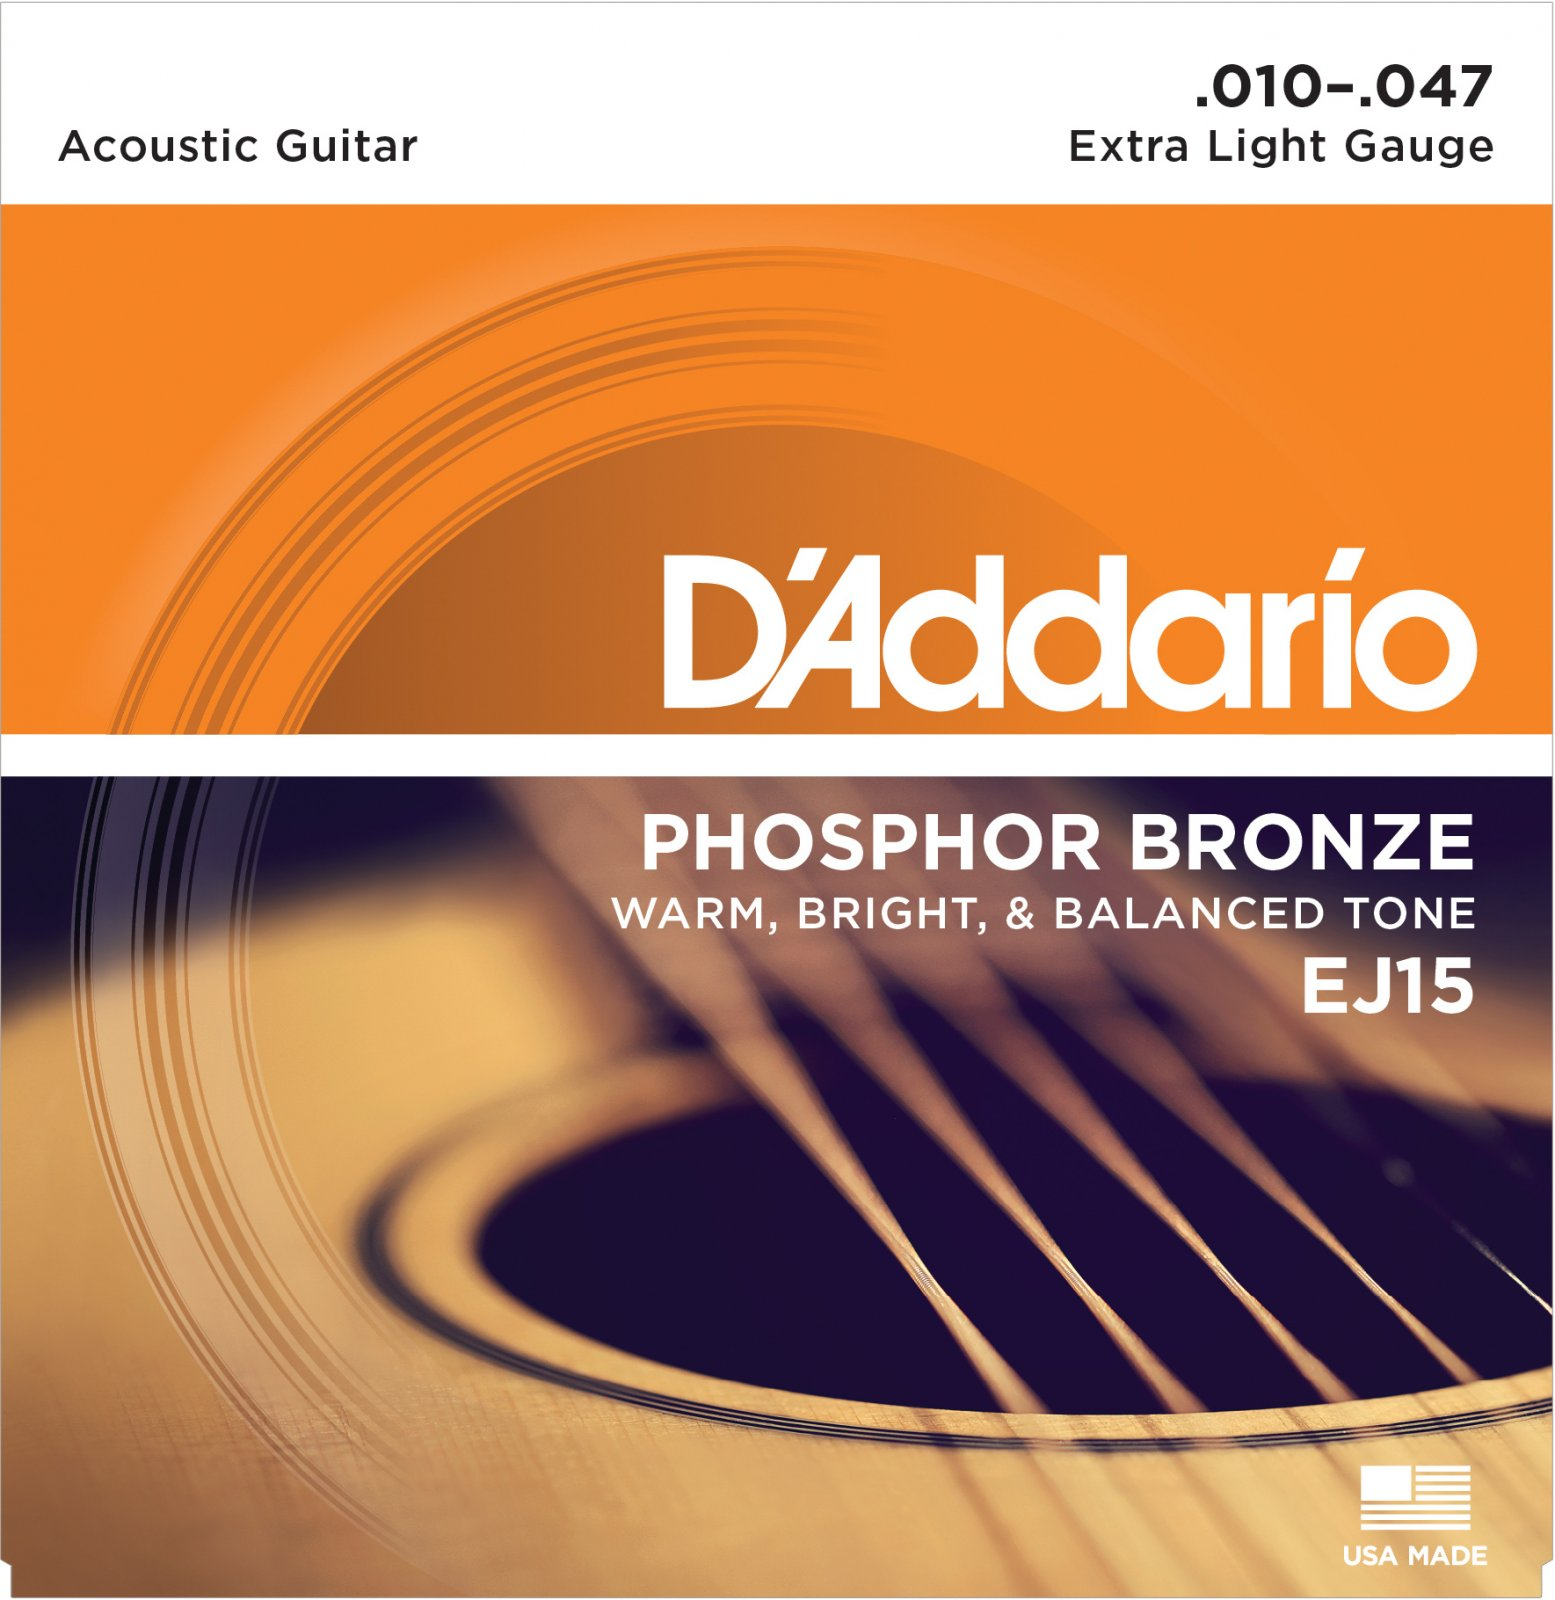 D'Addario Phosphor Bronze EJ15 Acoustic Guitar Strings, Extra Light, 10-47